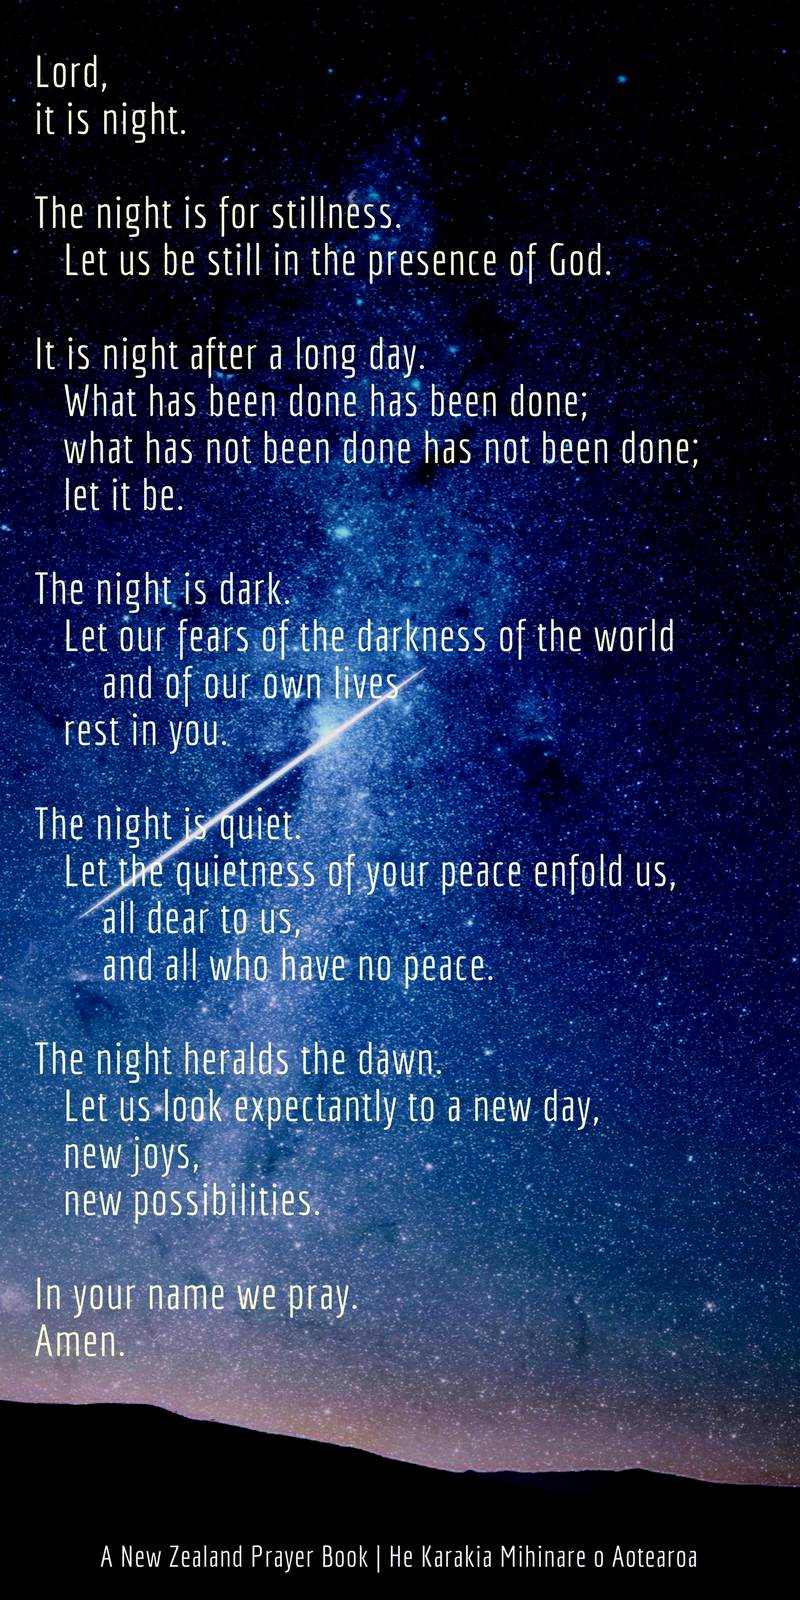 A Prayer Before Sleep What Has Not Been Done Sacraparental